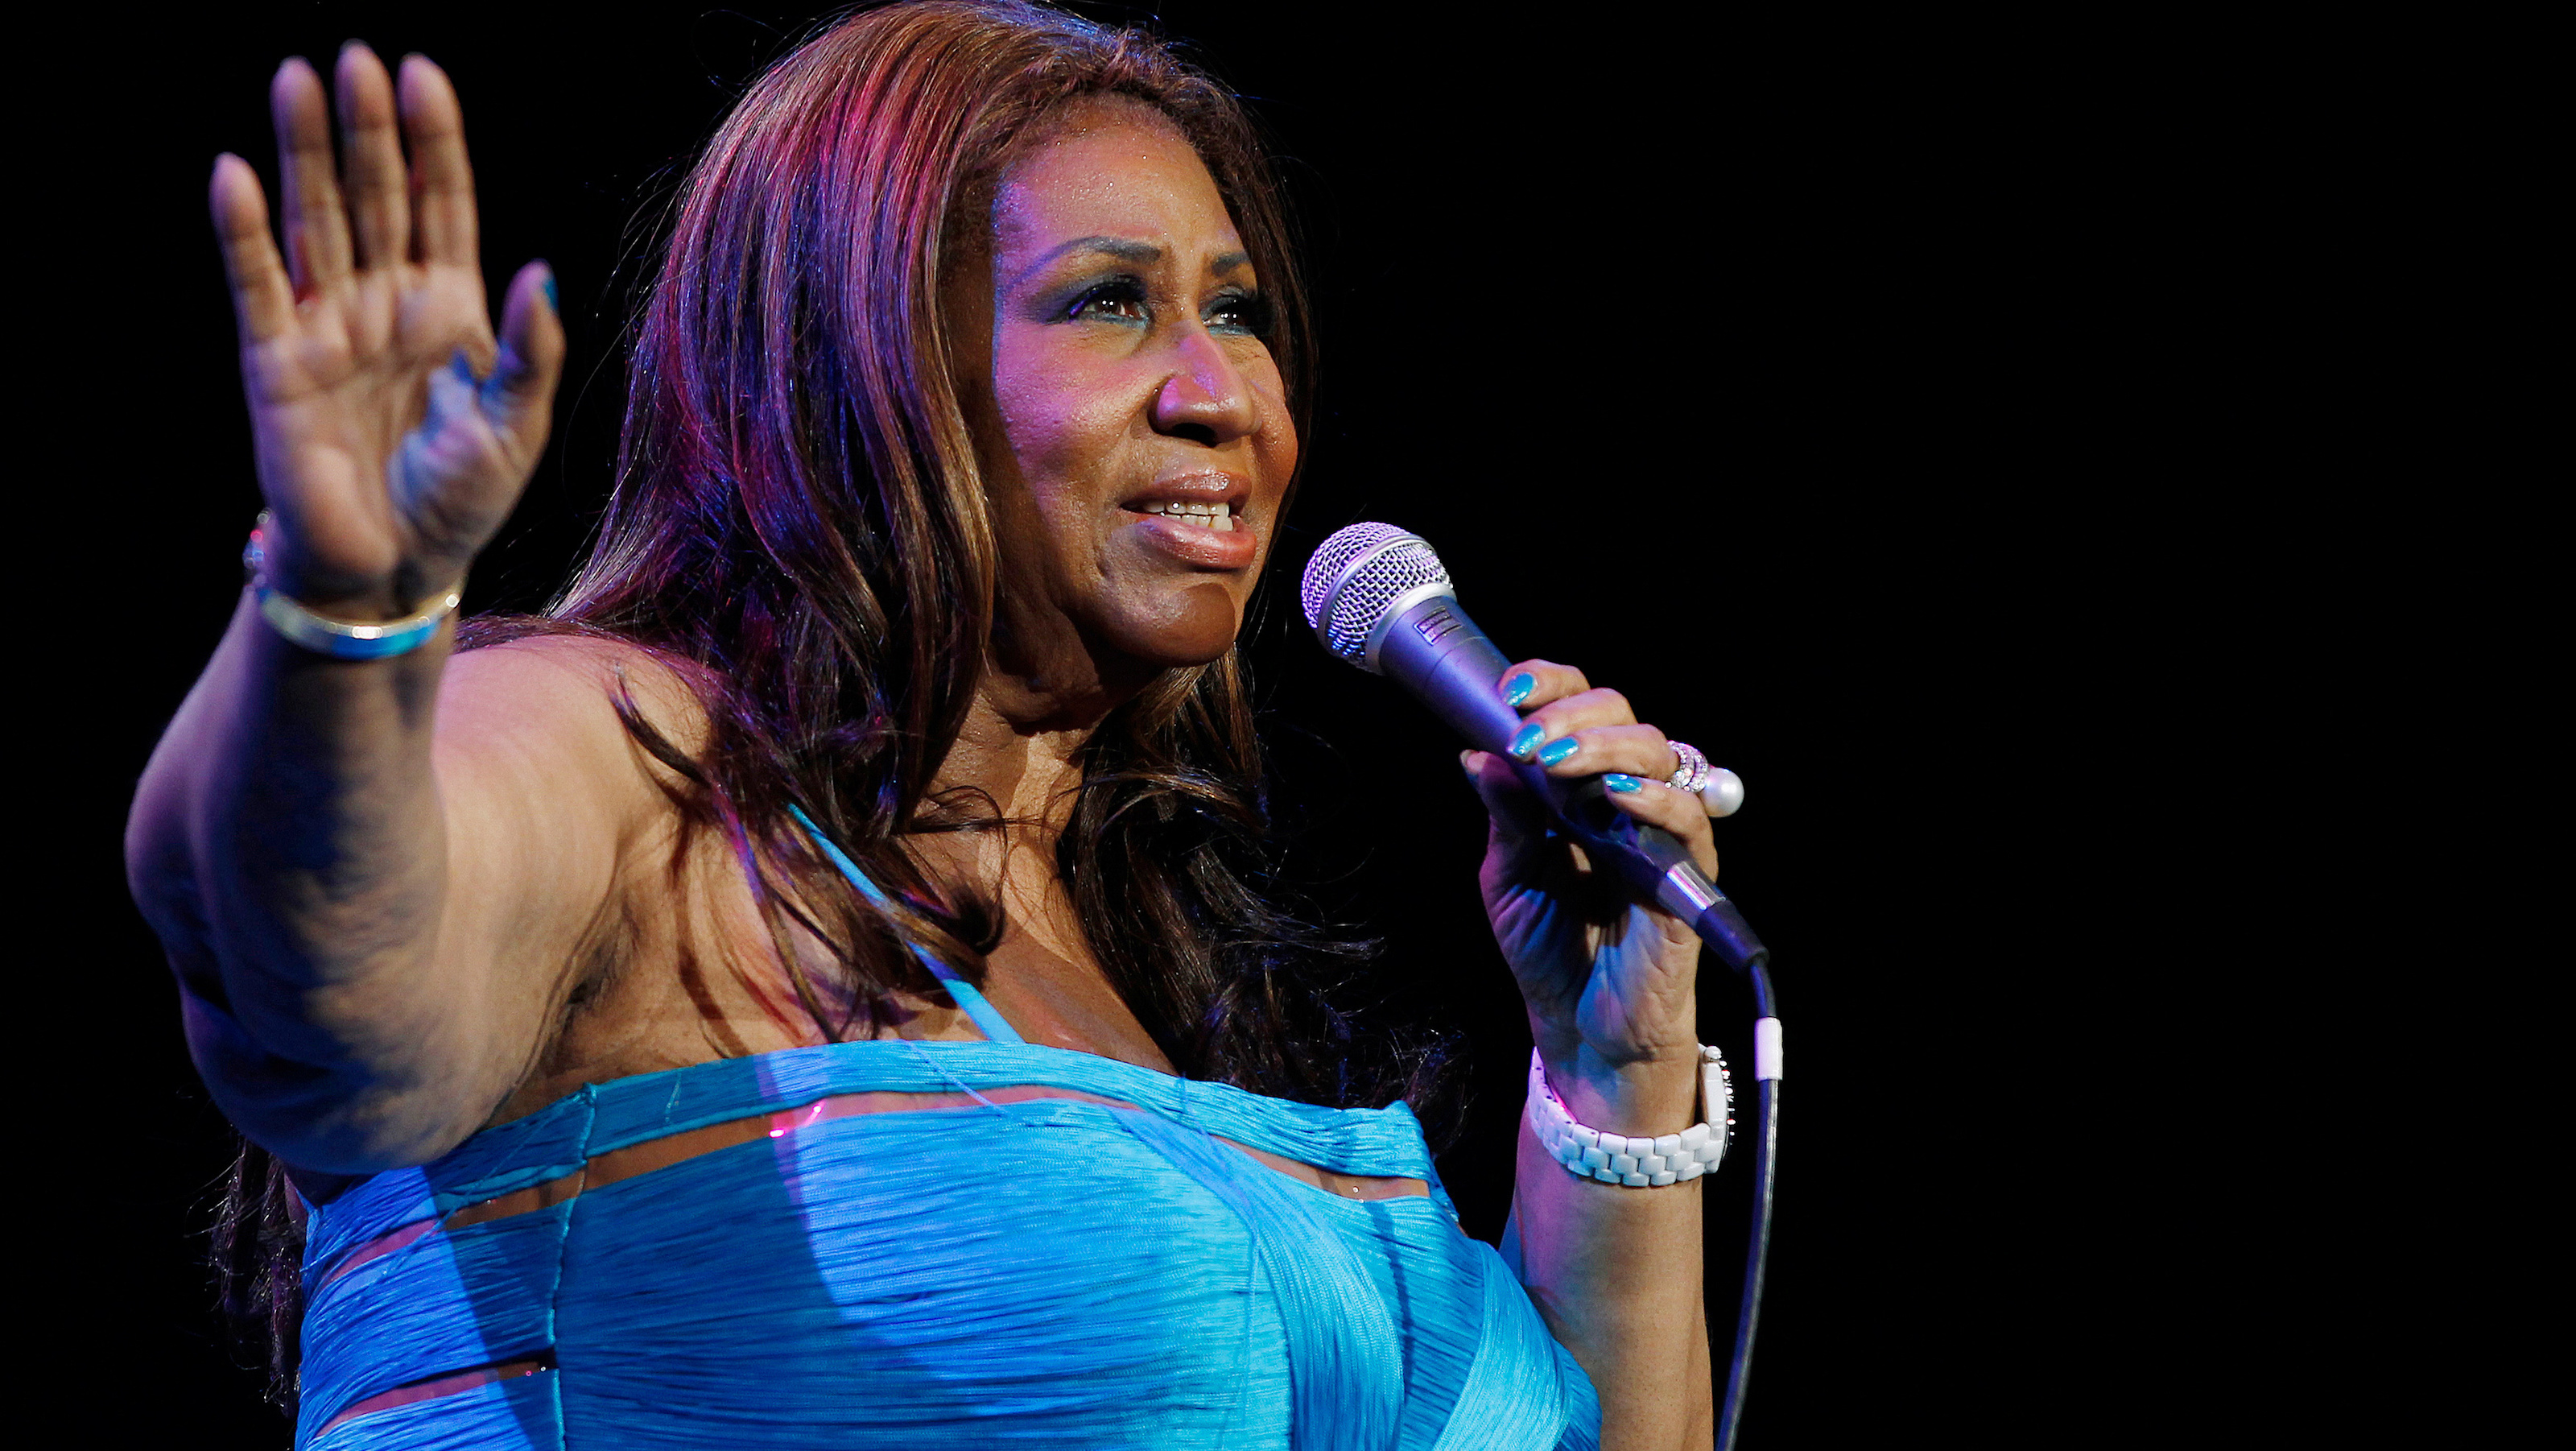 FILE PHOTO -- Aretha Franklin performs at Radio City Music Hall in New York February 17, 2012. REUTERS/Shannon Stapleton/File Photo - RTX30B8M